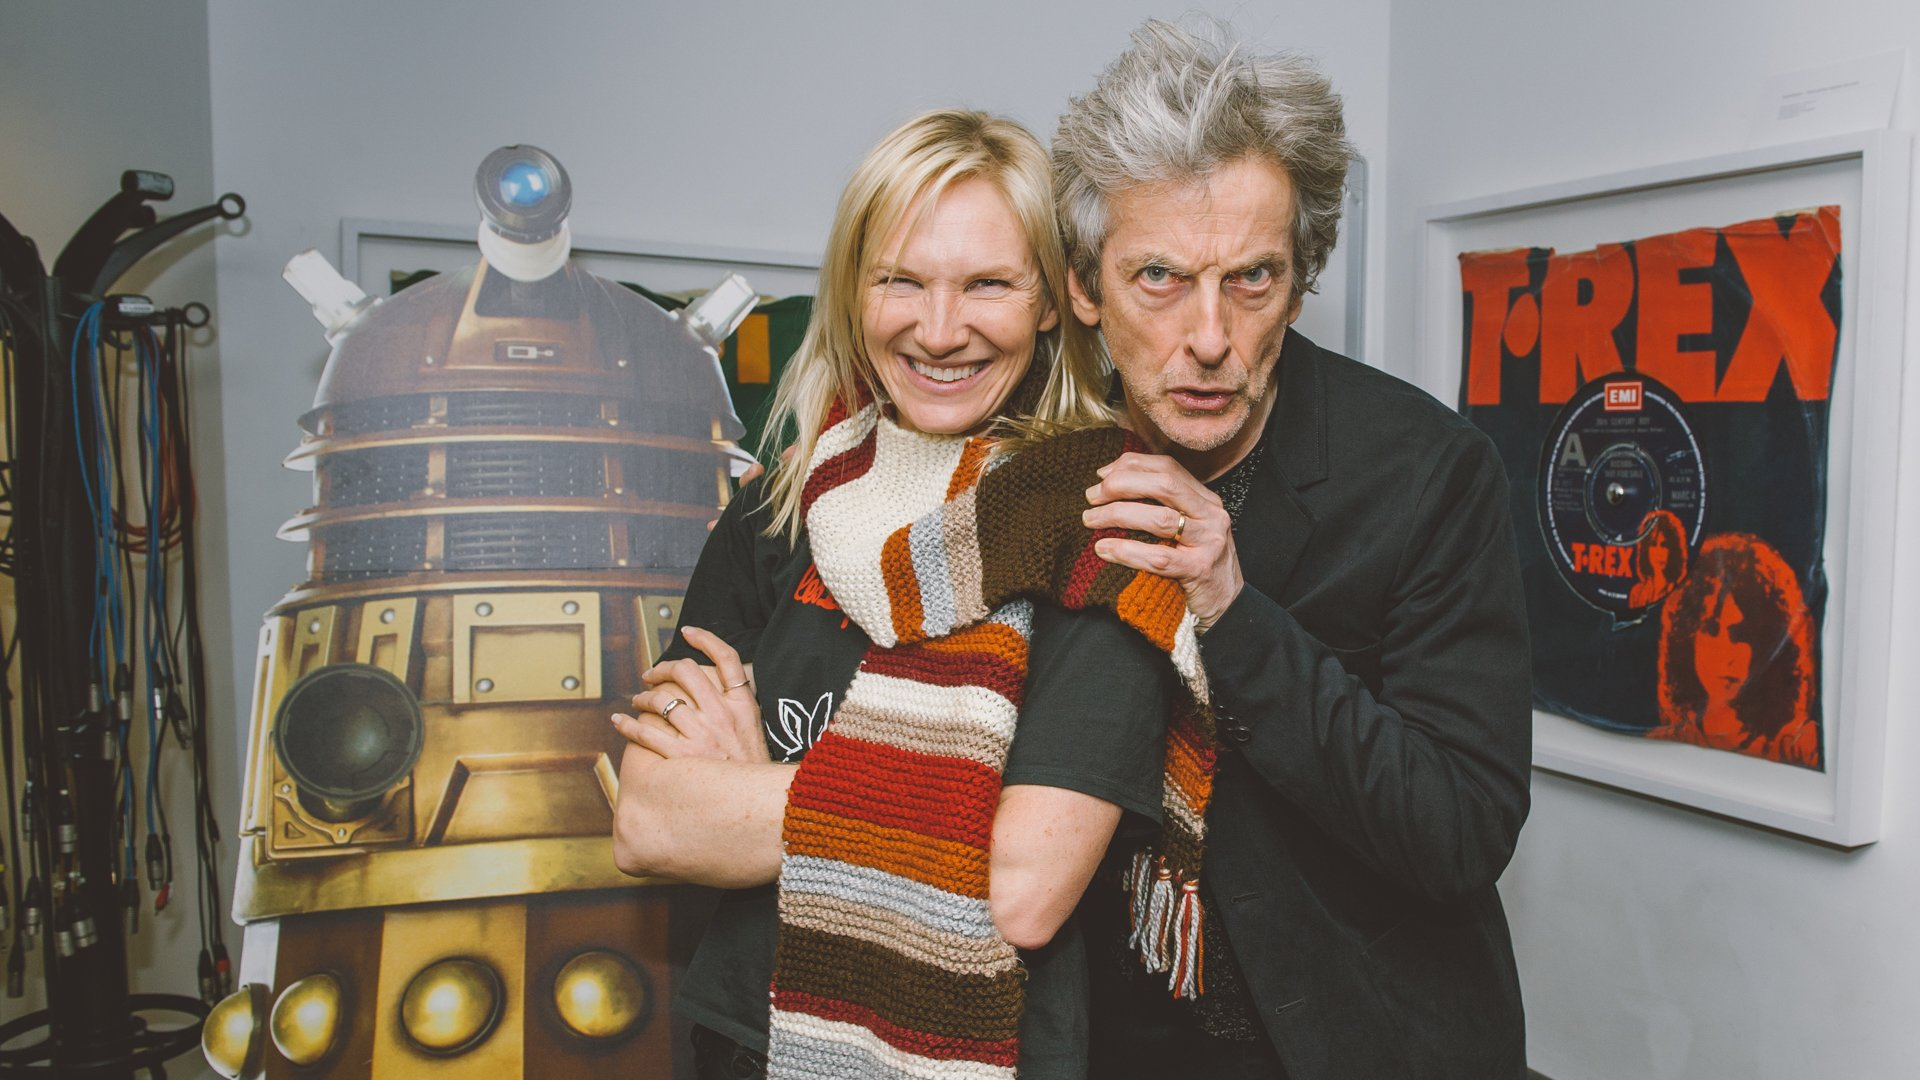 Peter Capaldi Reveals Doctor Who Series 10 Will Be His Last